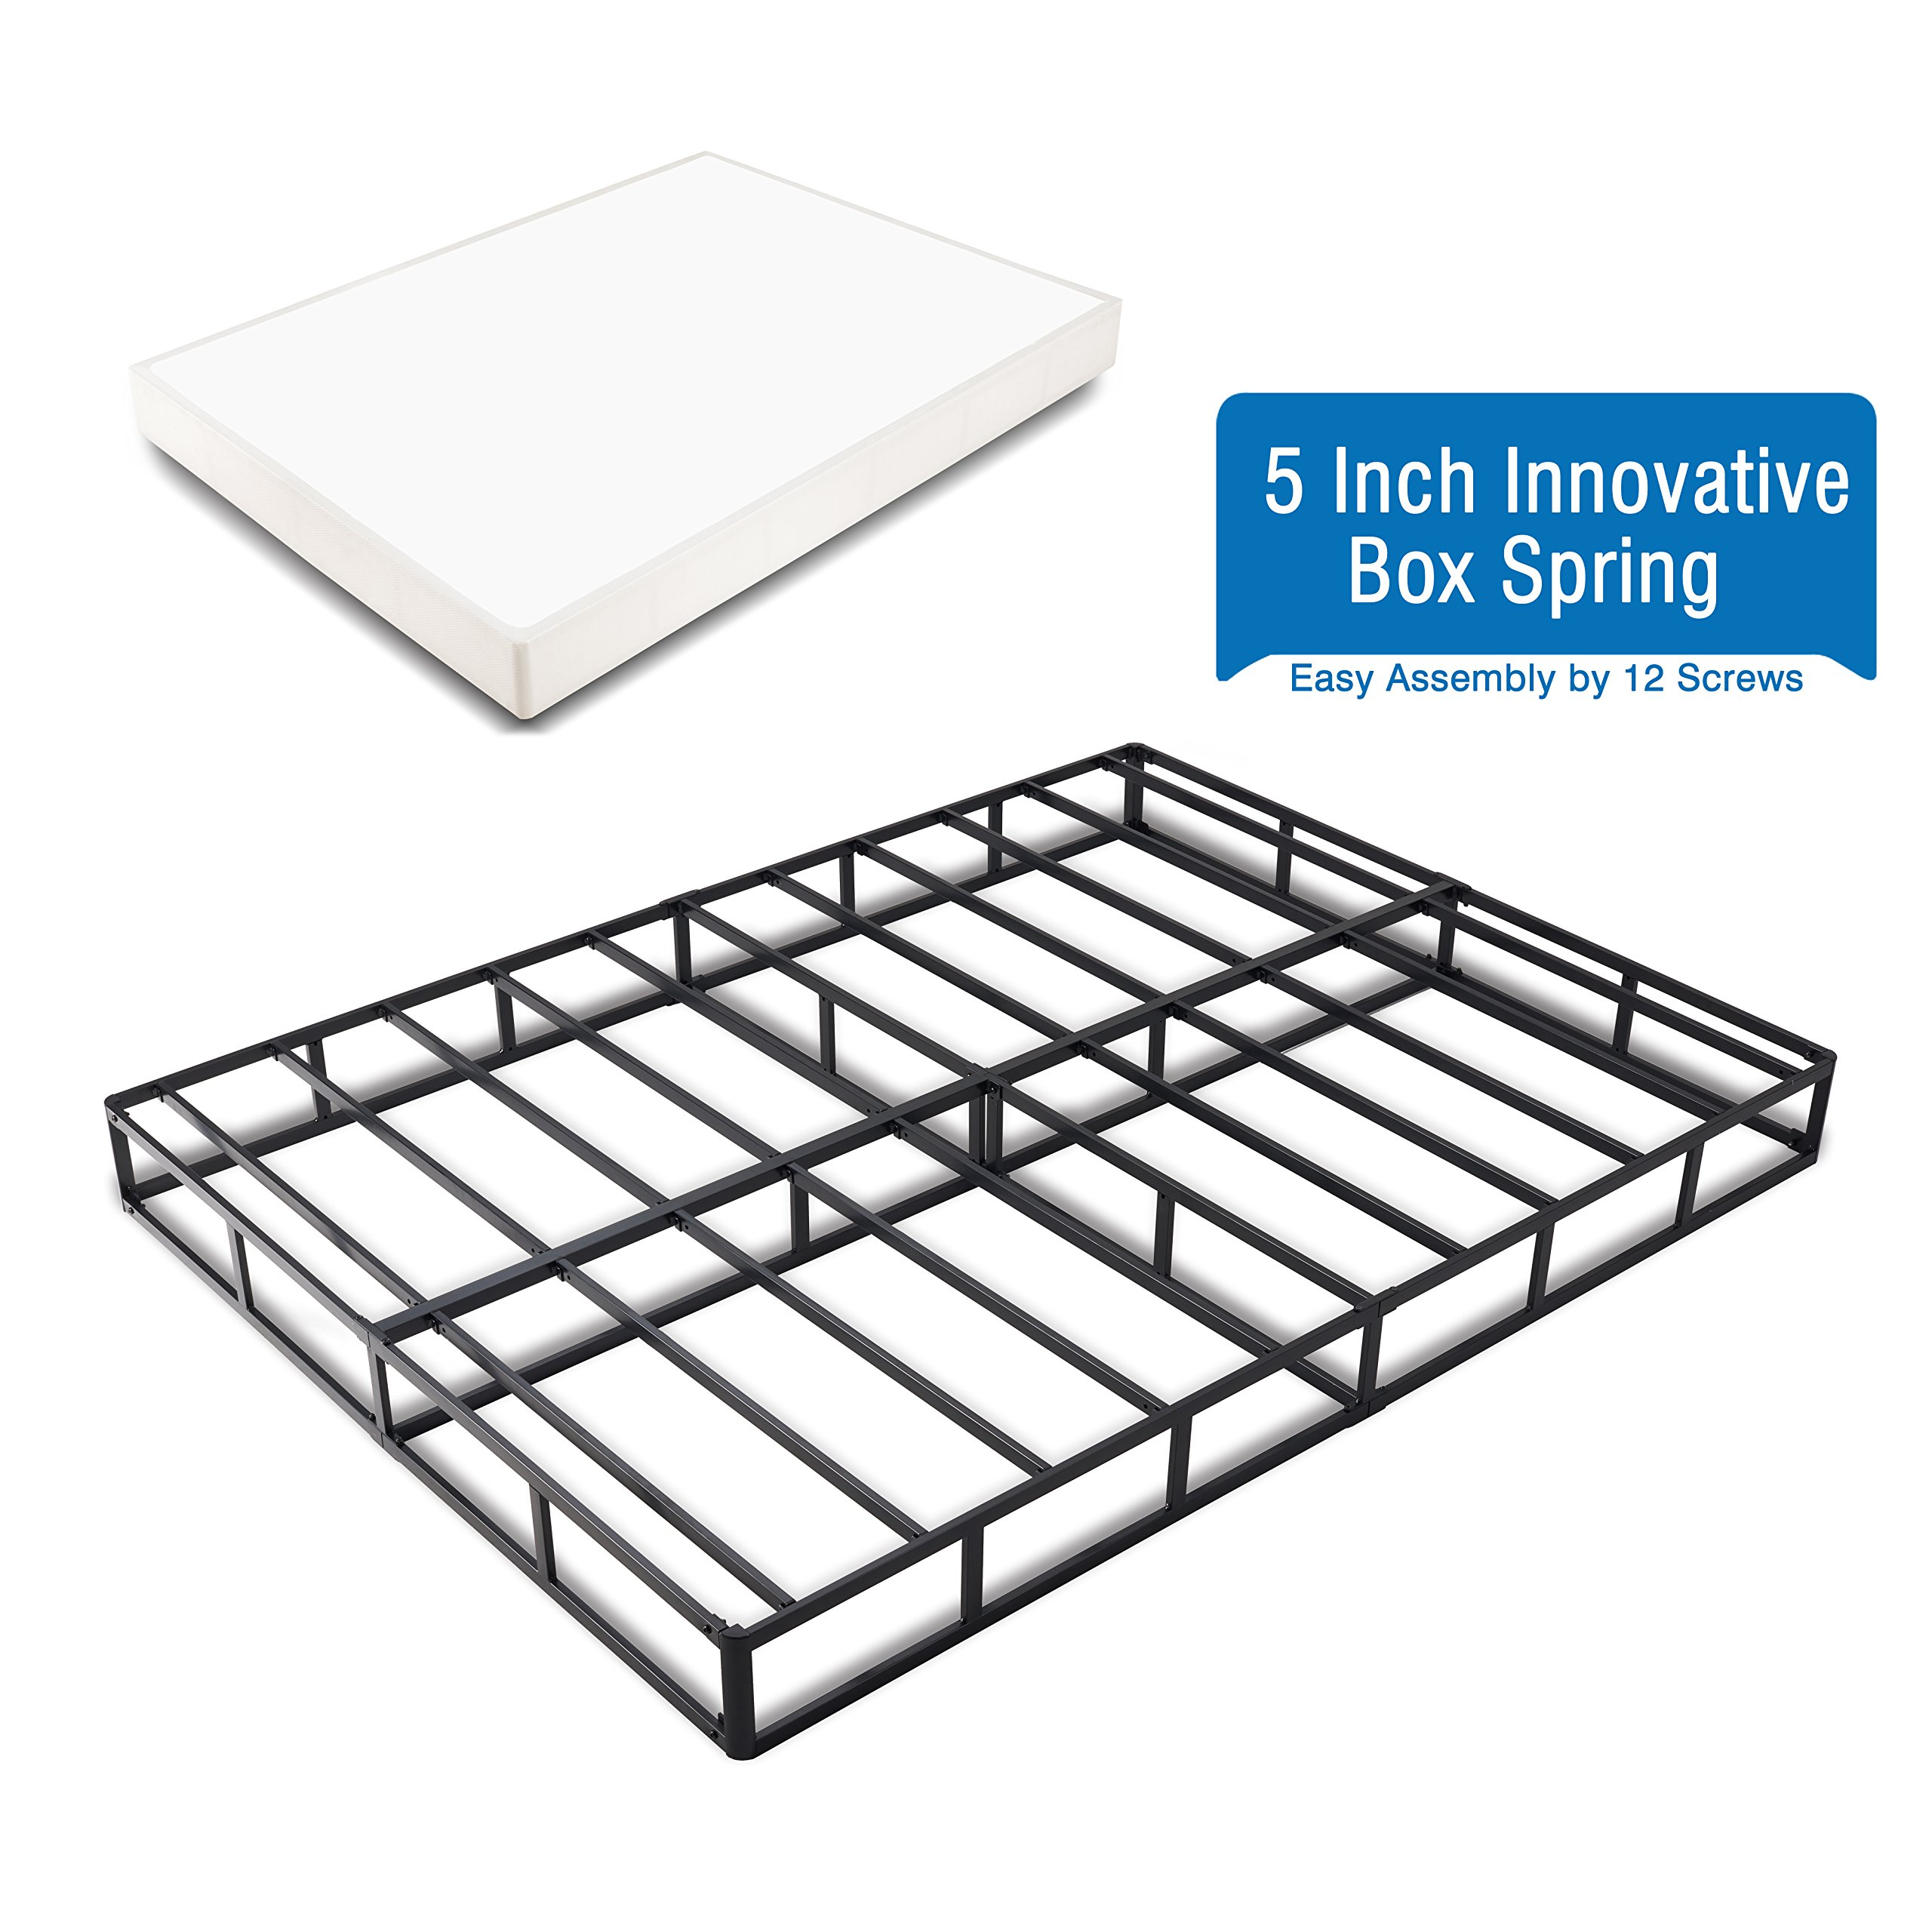 Heavy Duty 5 Inch Innovative Box Spring/ Strong Steel Structure Mattress Foundation (Easy Assembly by 12 Screws) Queen